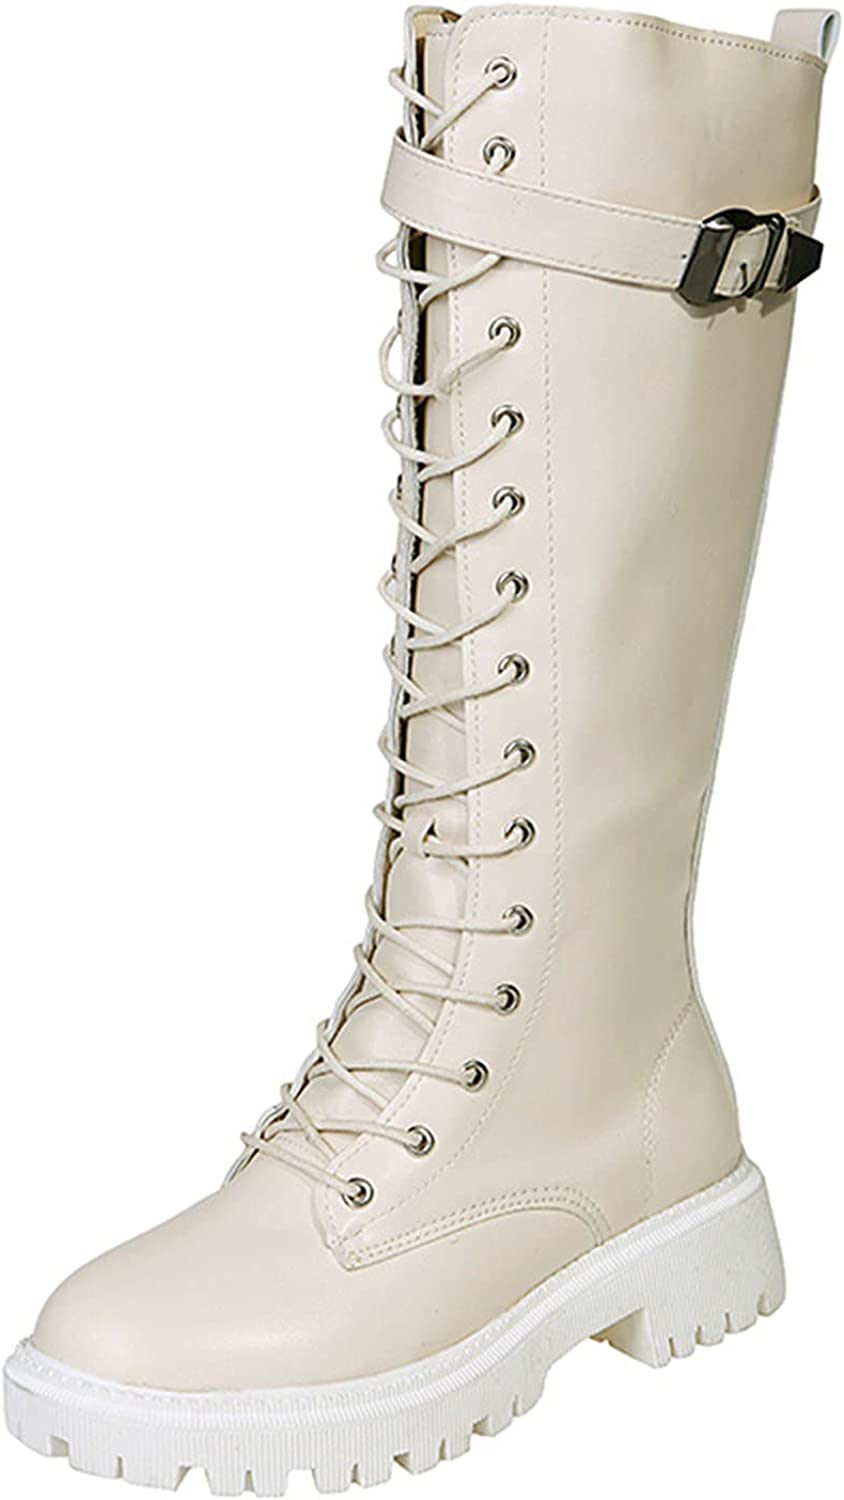 hlysgo Platform Boots for Women Punk Lacing Up Knee High Long Boots & Booties for Girls Round Toe Side Zipper Wedge Shoes